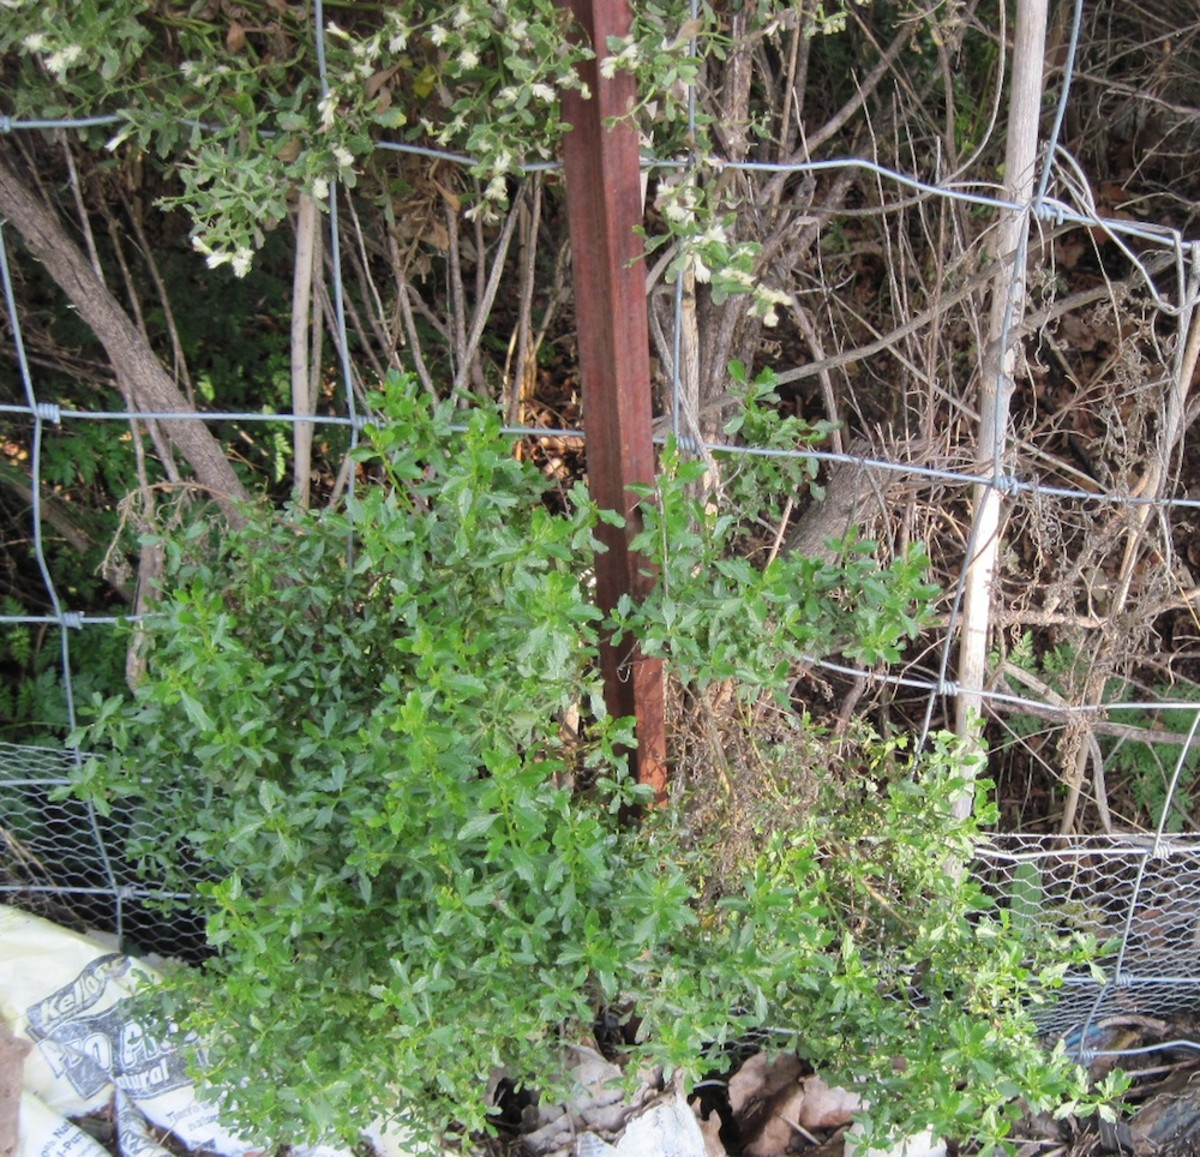 At the top you see blooming coyote bush which will soon be spreading seeds over the fence. Below are younger shoots from the branches pruned last year. Behind the fence, low on the right, poison hemlock lurks, ready to grow up and do its own invading